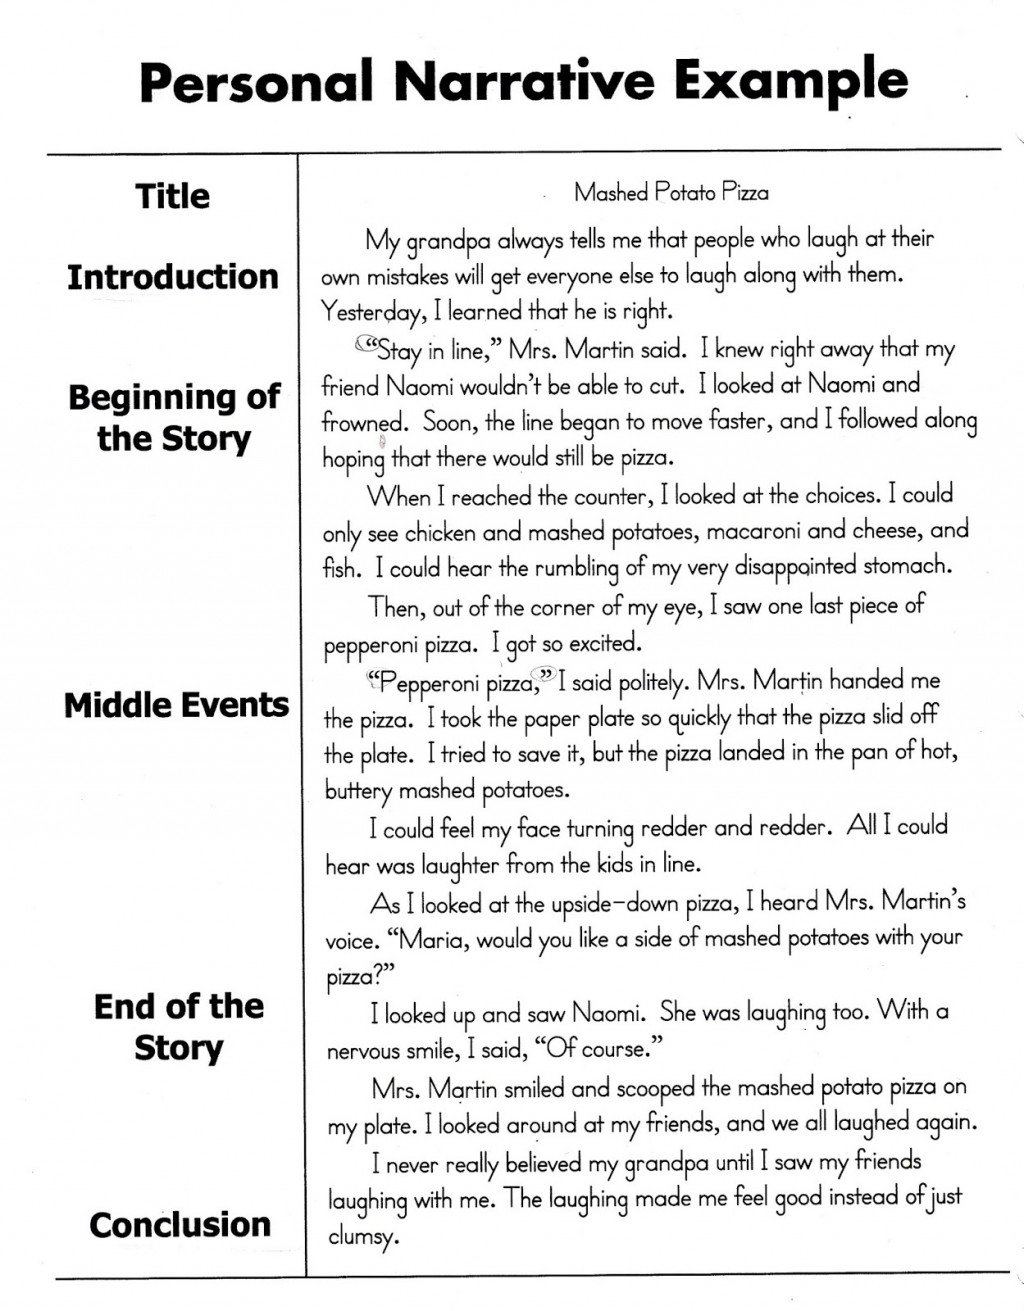 007 Personal20narrative Personal Essay Prompts Beautiful Narrative Writing 3rd Grade Ks1 Ks2 Large